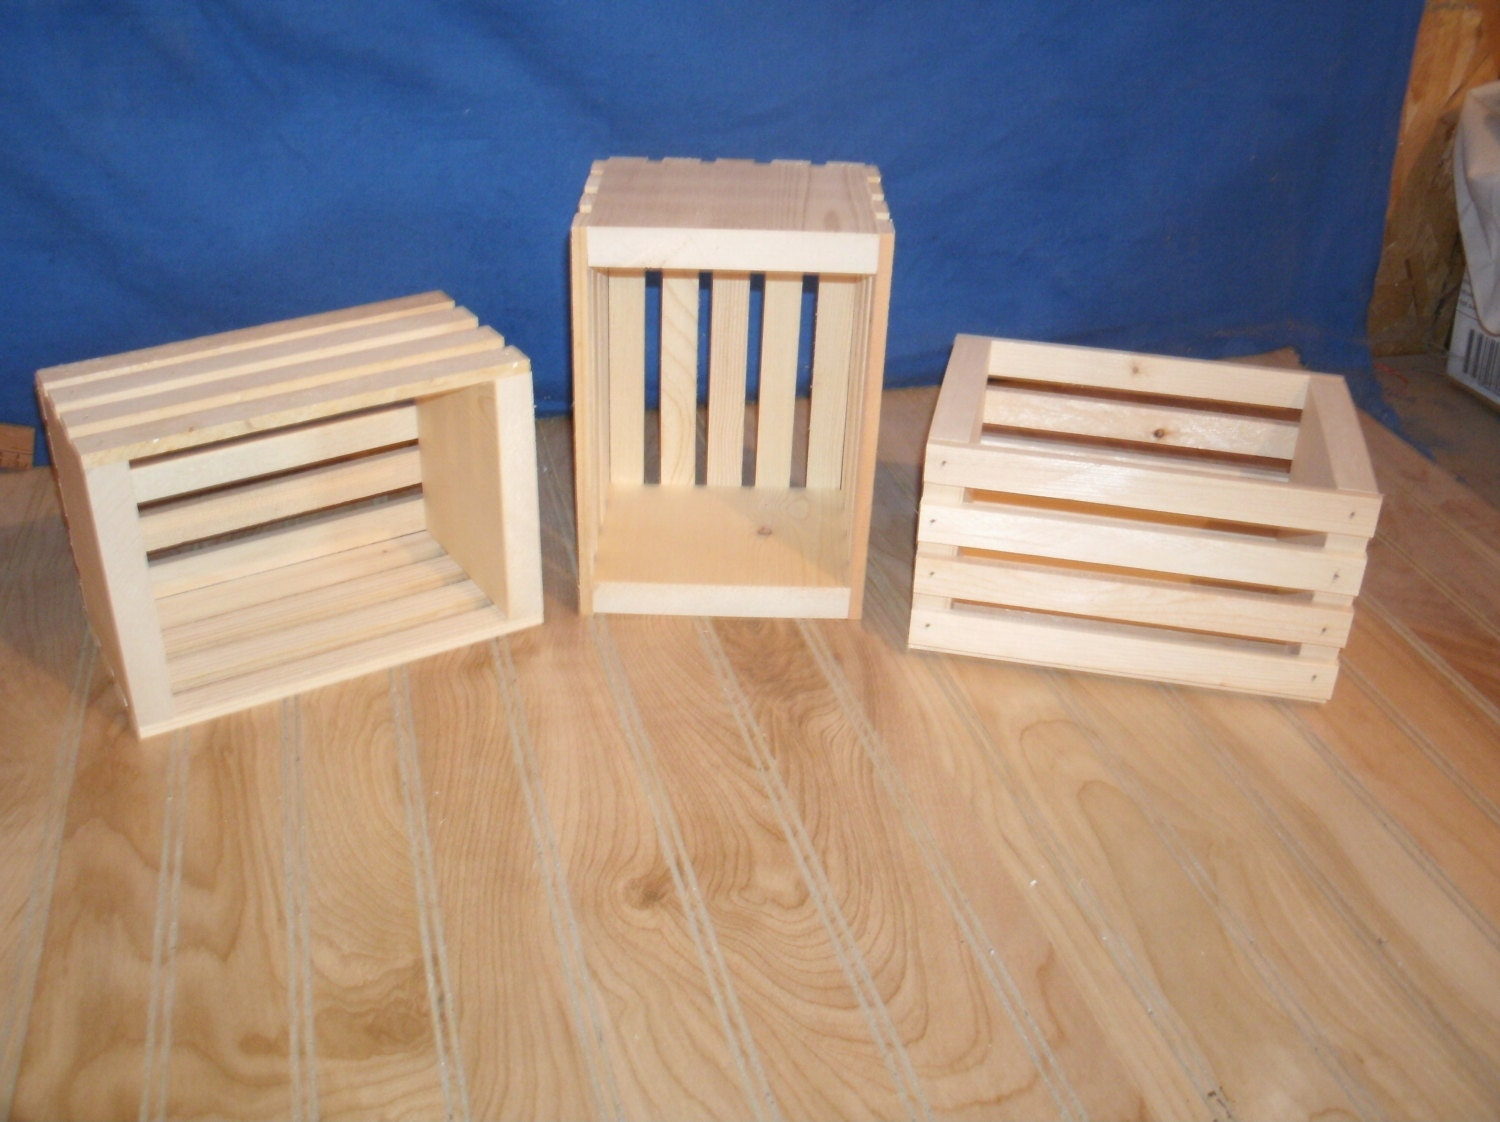 10 small wood crates unfinished wood crates wooden crate for Timber crates